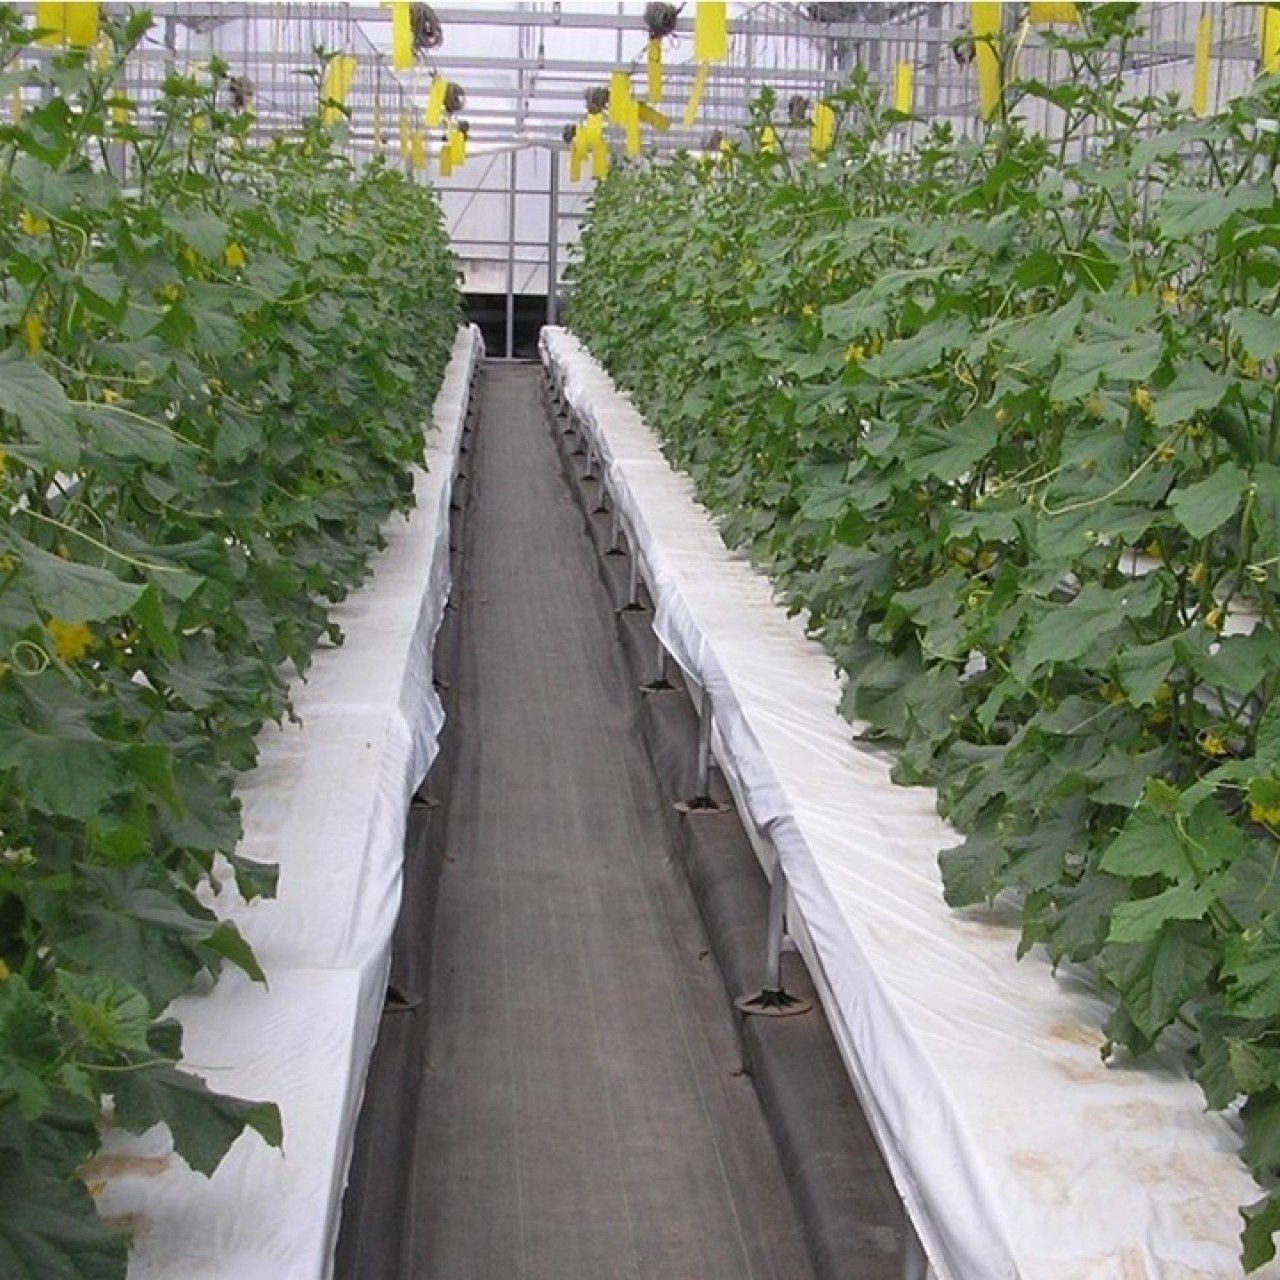 Farming without soil: new Japanese tech makes growing fruit and